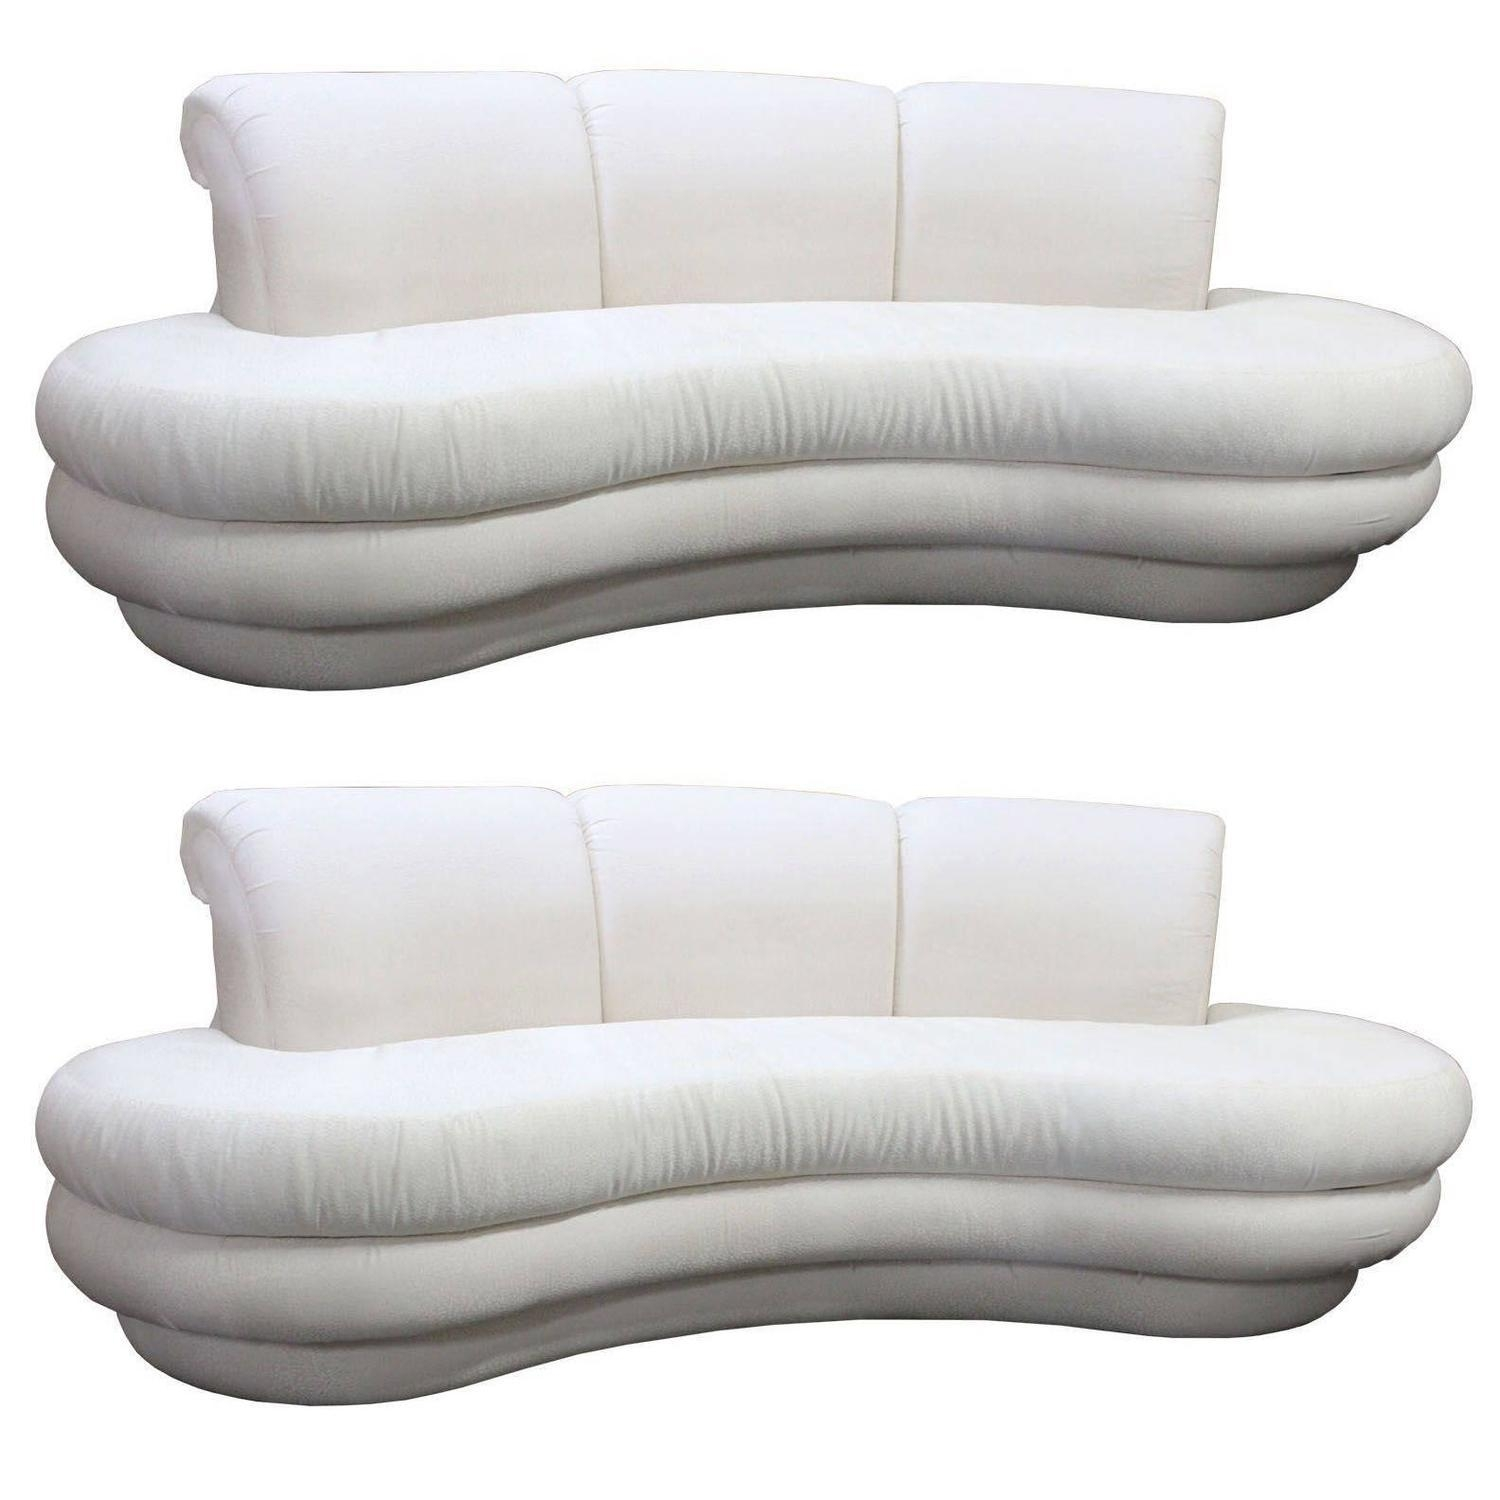 Adrian Pearsall Sofas – 64 For Sale At 1Stdibs Pertaining To Floating Cloud Couches (View 11 of 21)